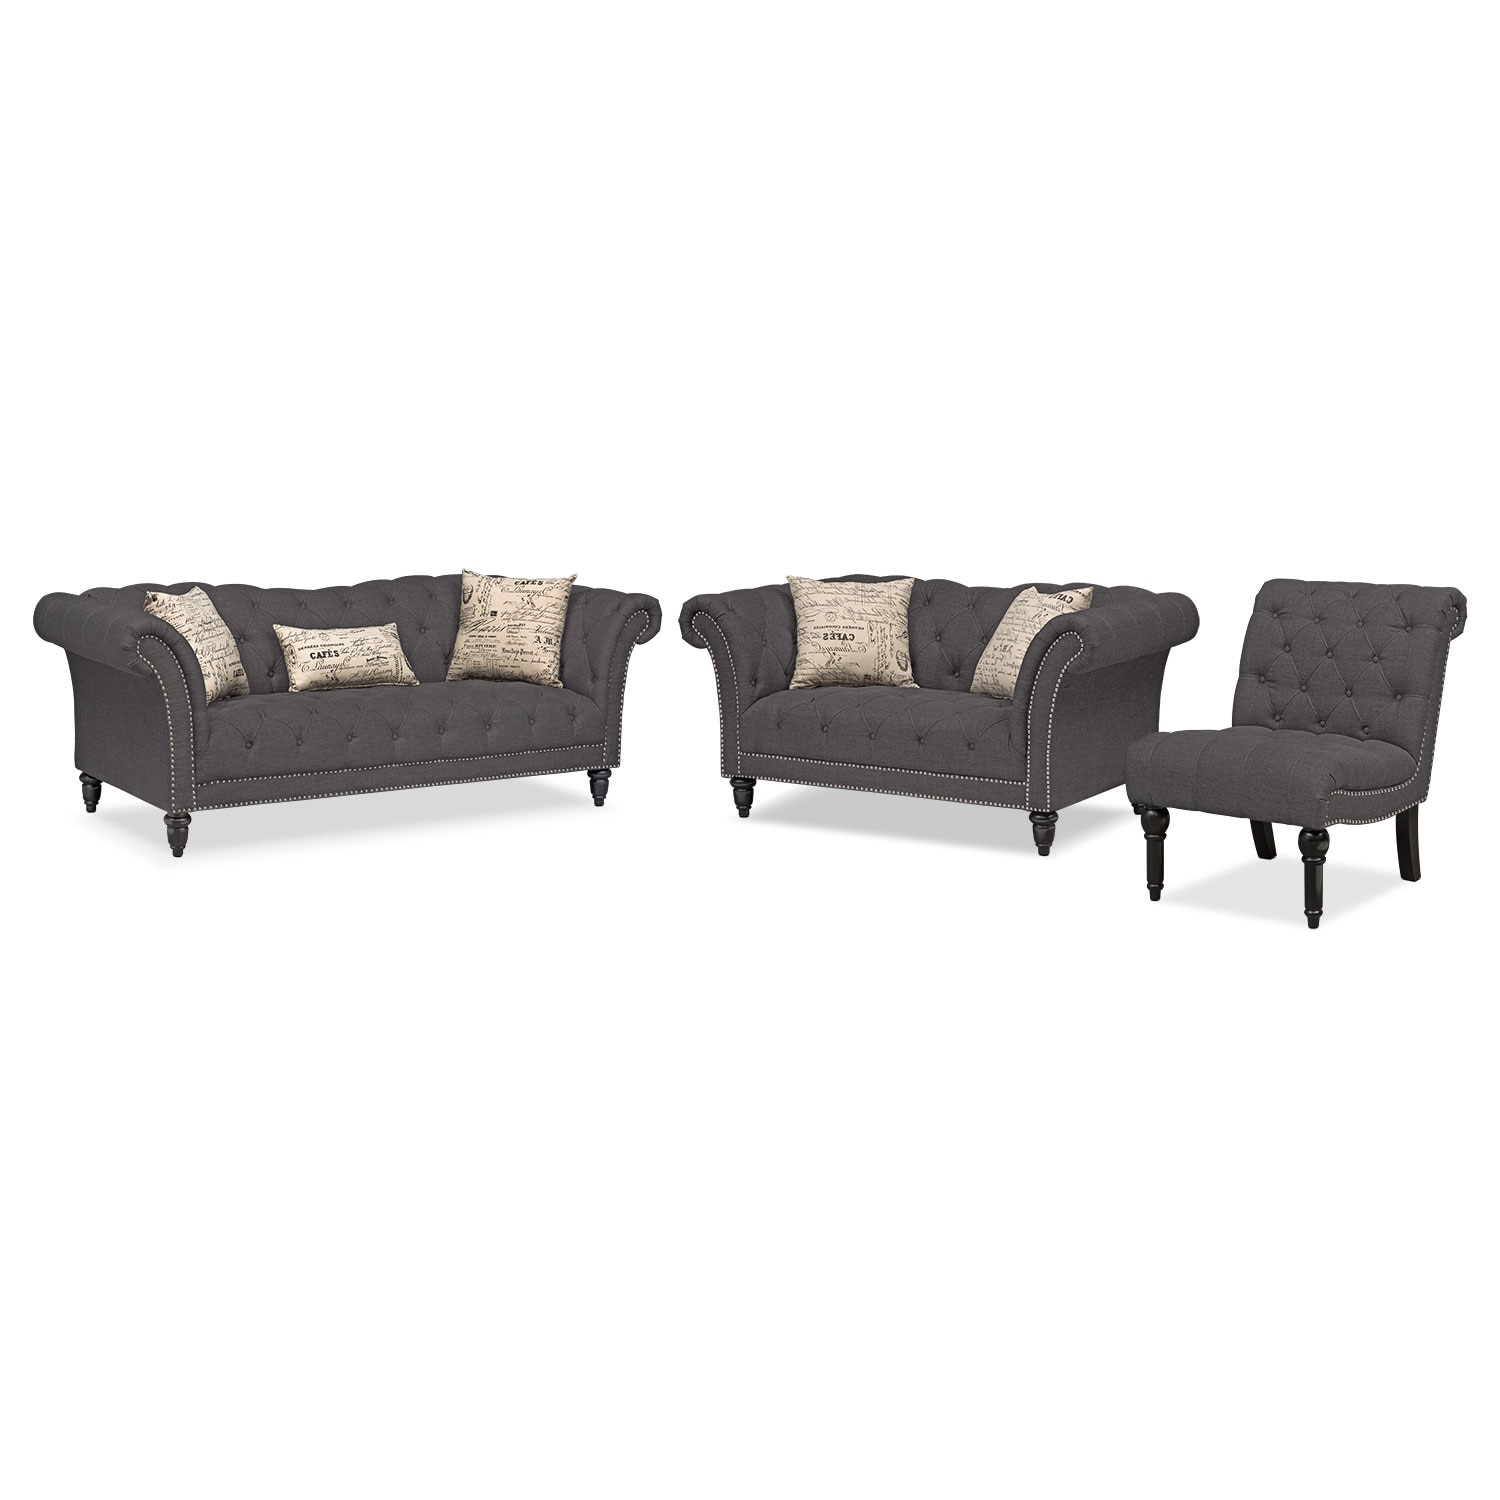 Living Room Furniture - Marisol Sofa, Loveseat and Armless Chair Set - Charcoal